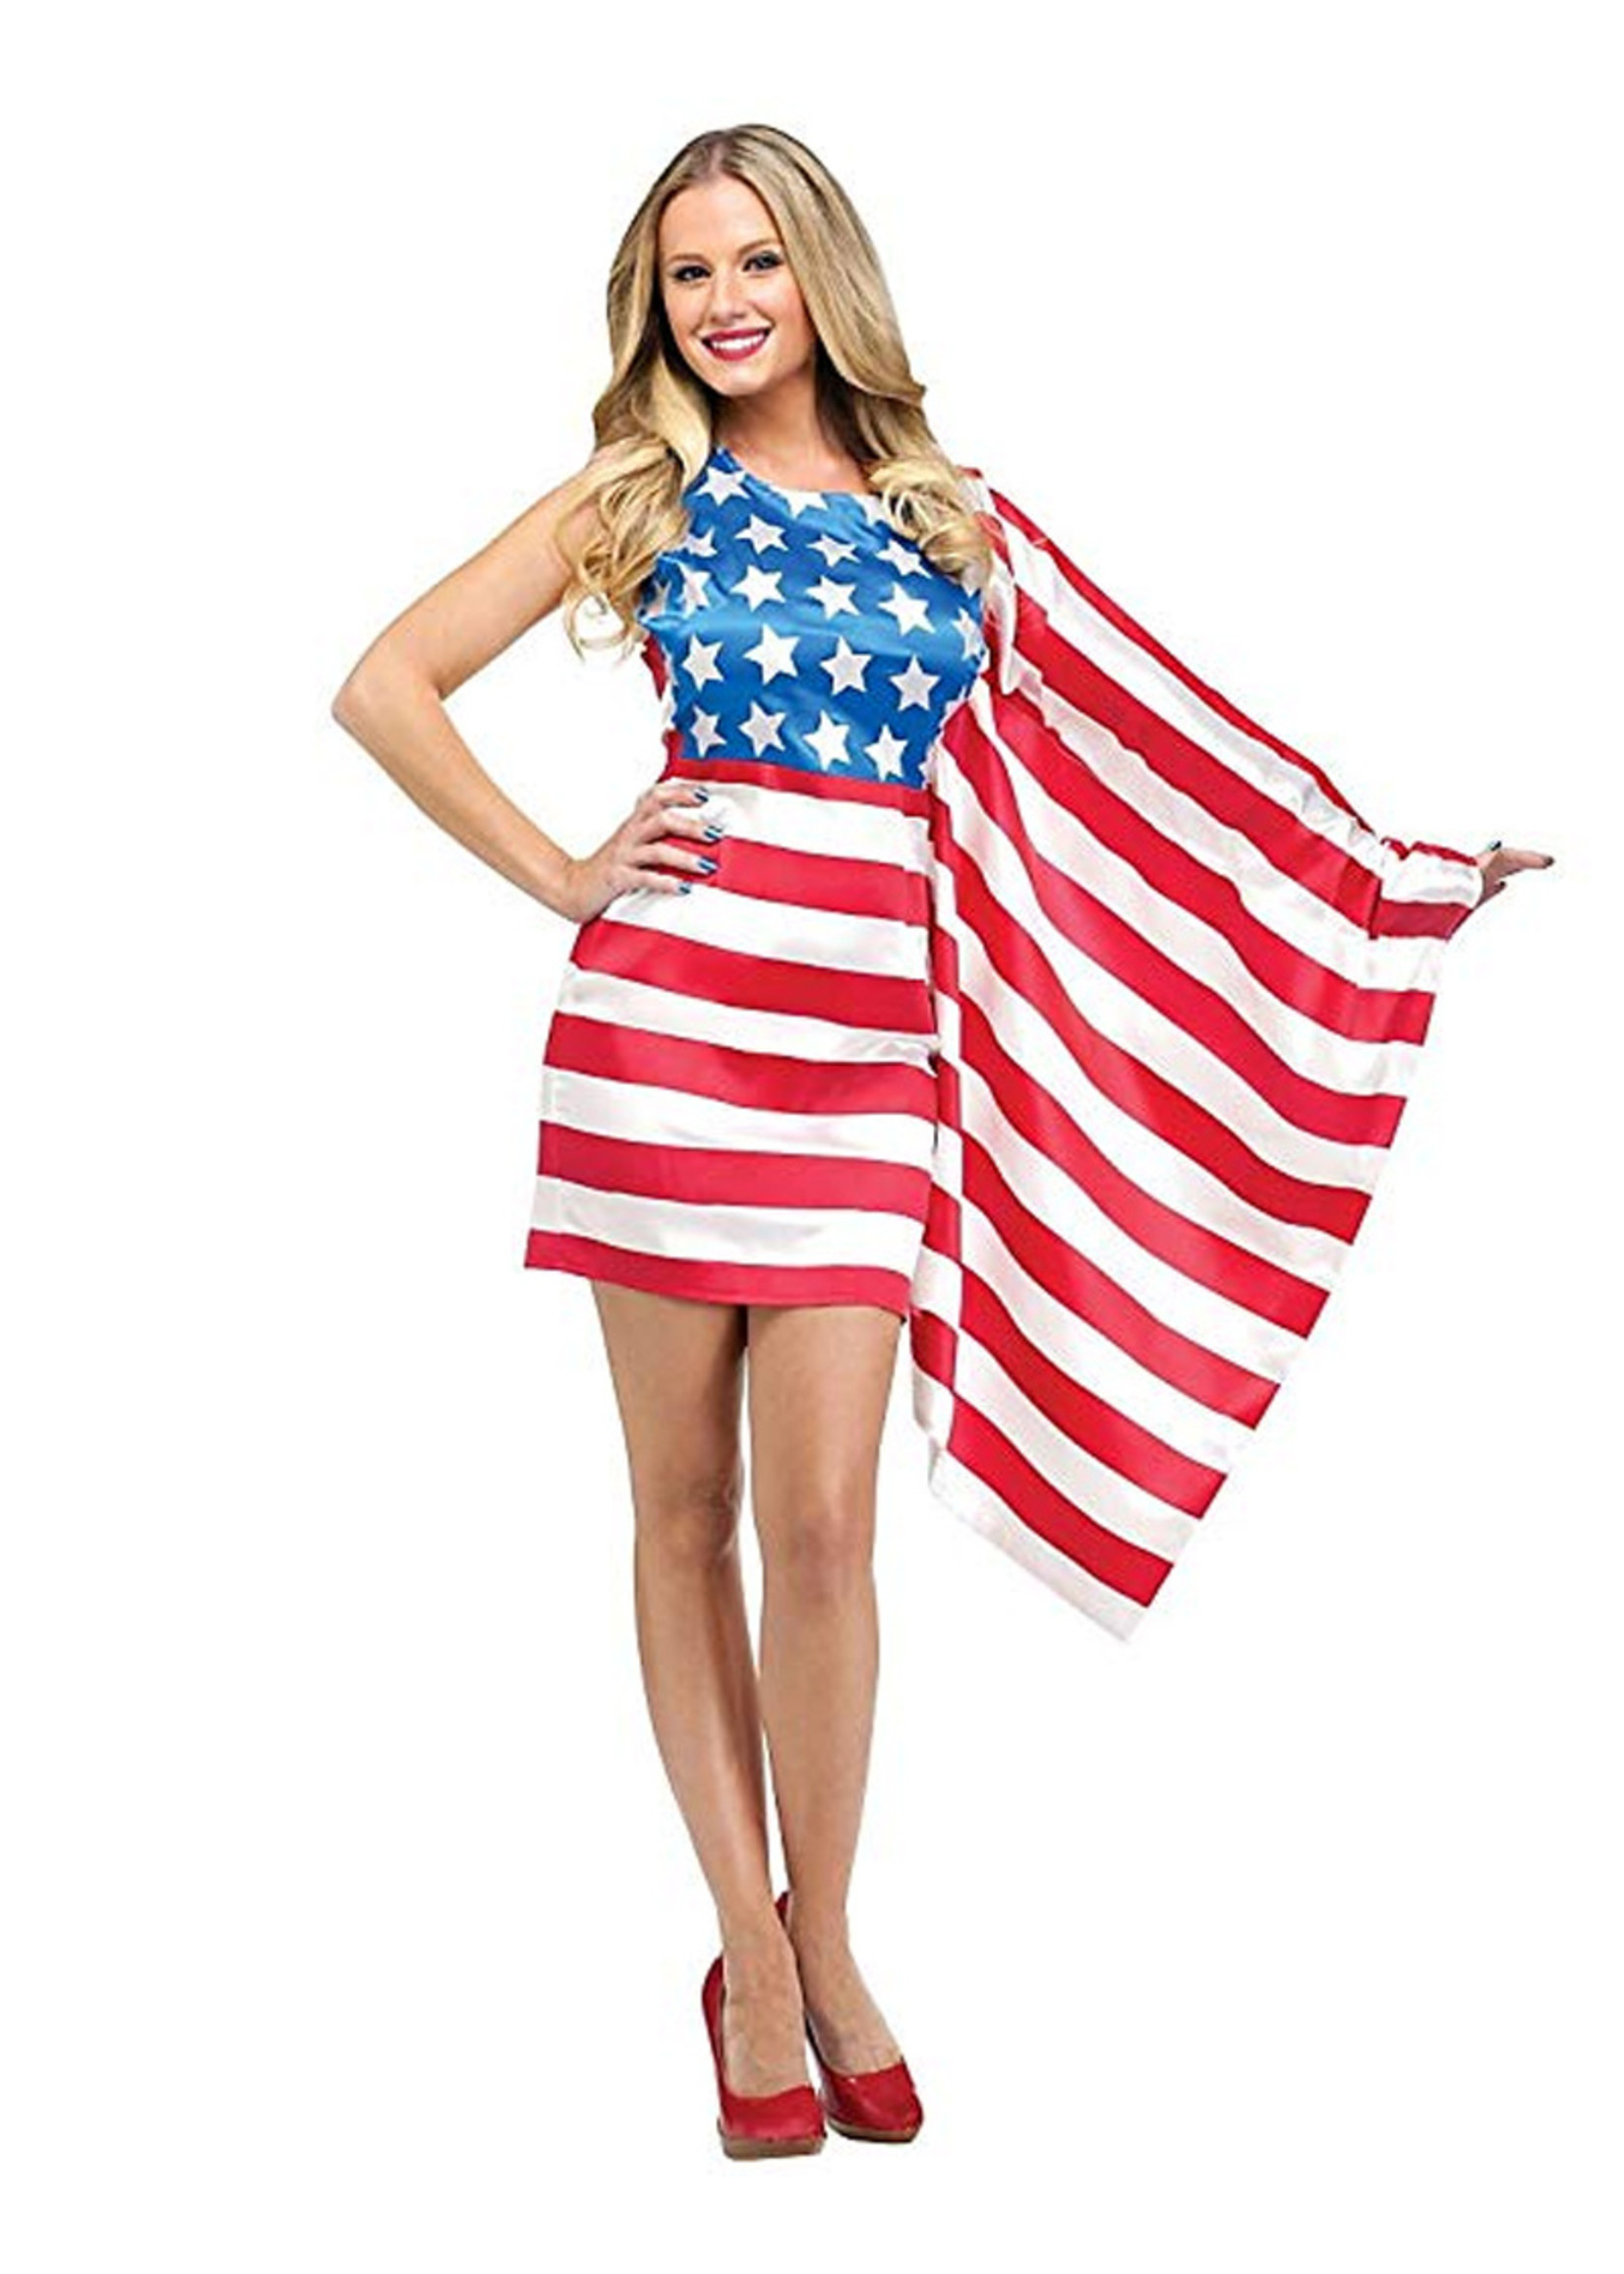 American Beauty Costume - Women's